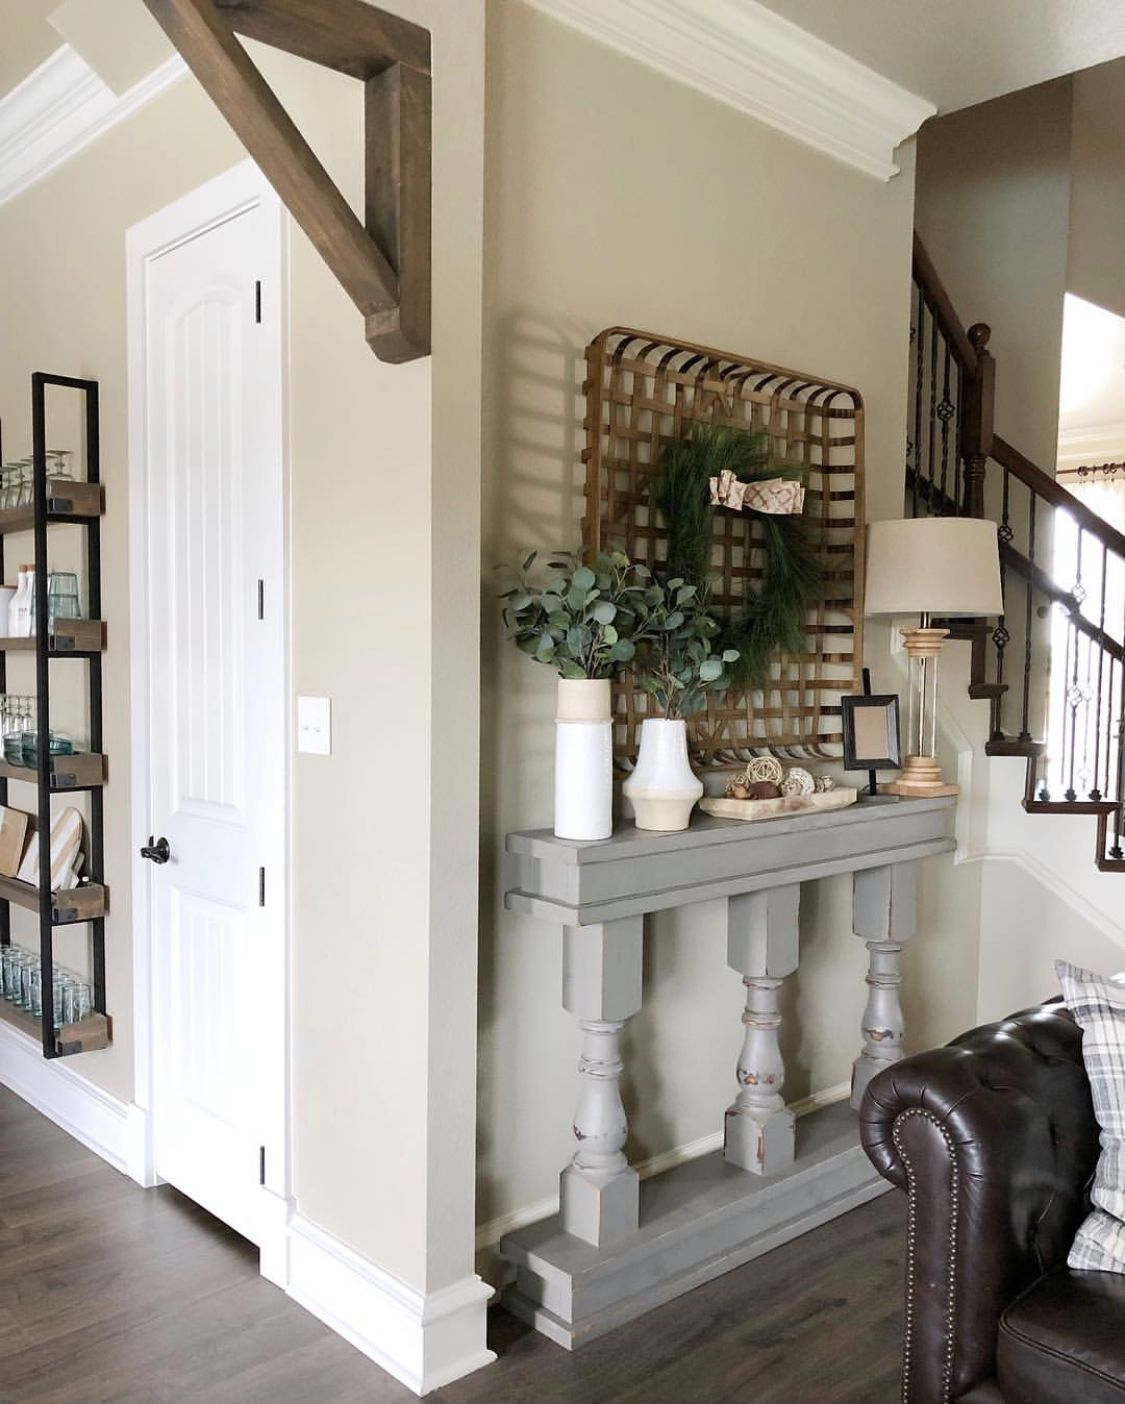 27 Eclectic Farmhouse Decor Family Rooms Coffee Tables 61: 25 Must-Try Rustic Wall Decor Ideas Featuring The Most